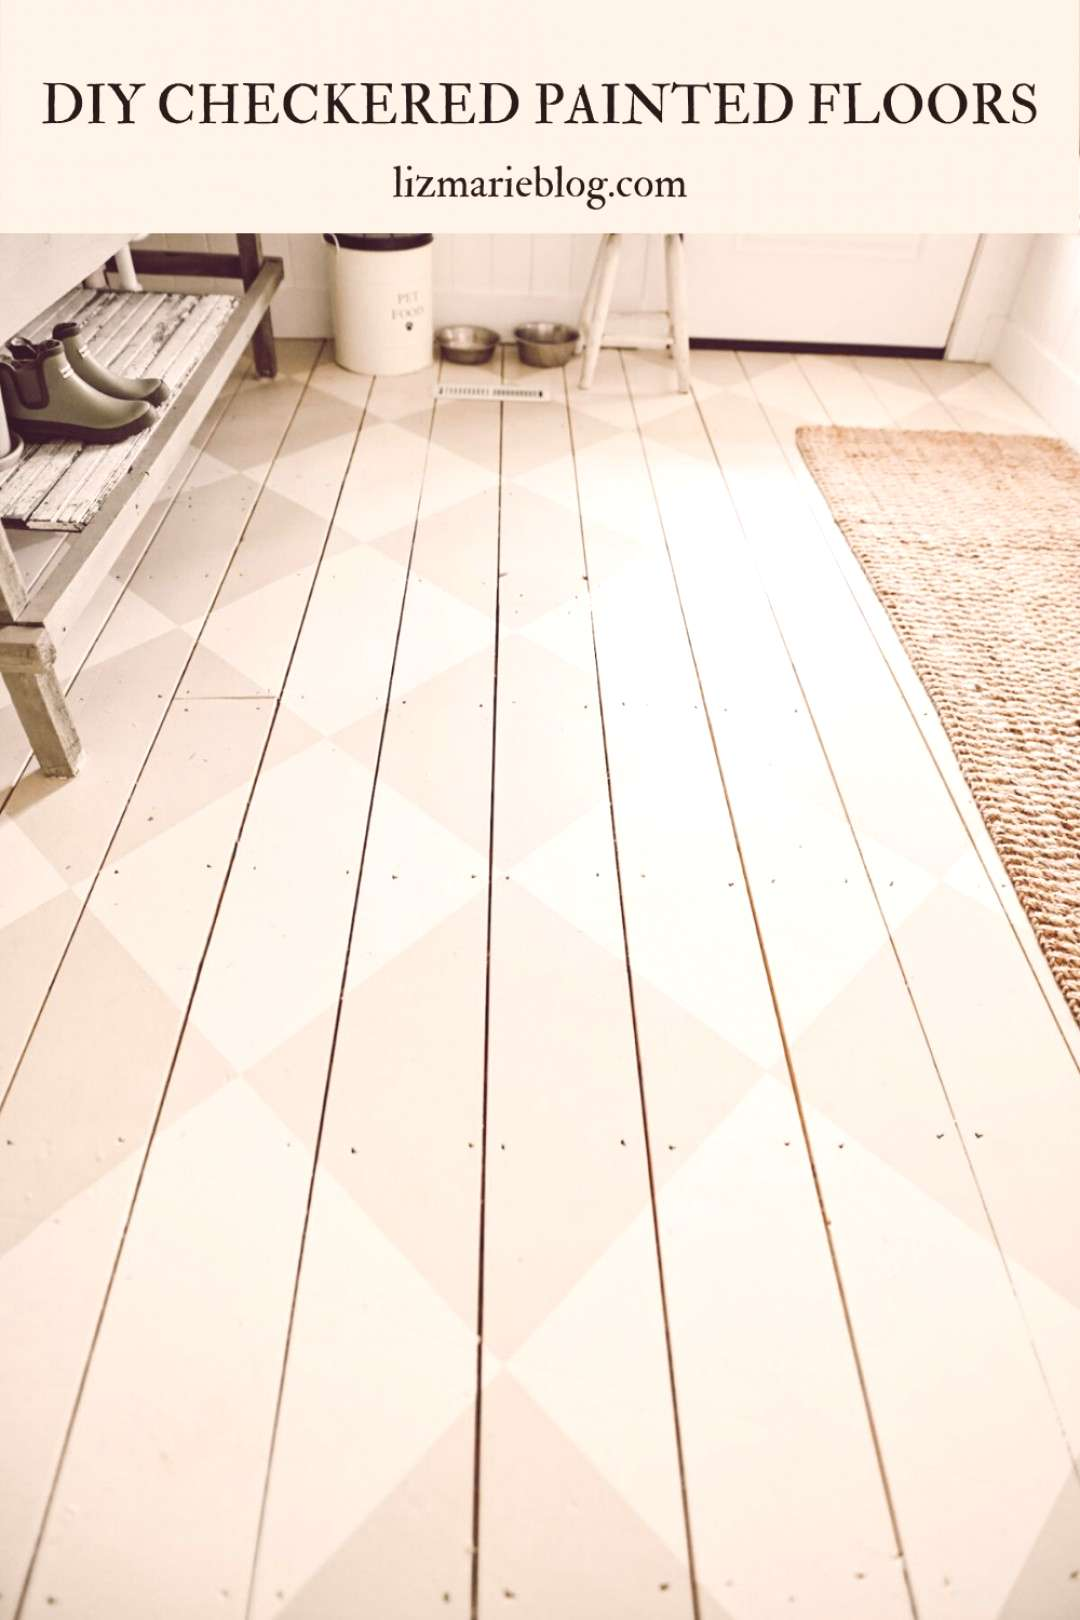 DIY Checkered Painted Floors Check out the full DIY for checkered painted floors in the mudroom!